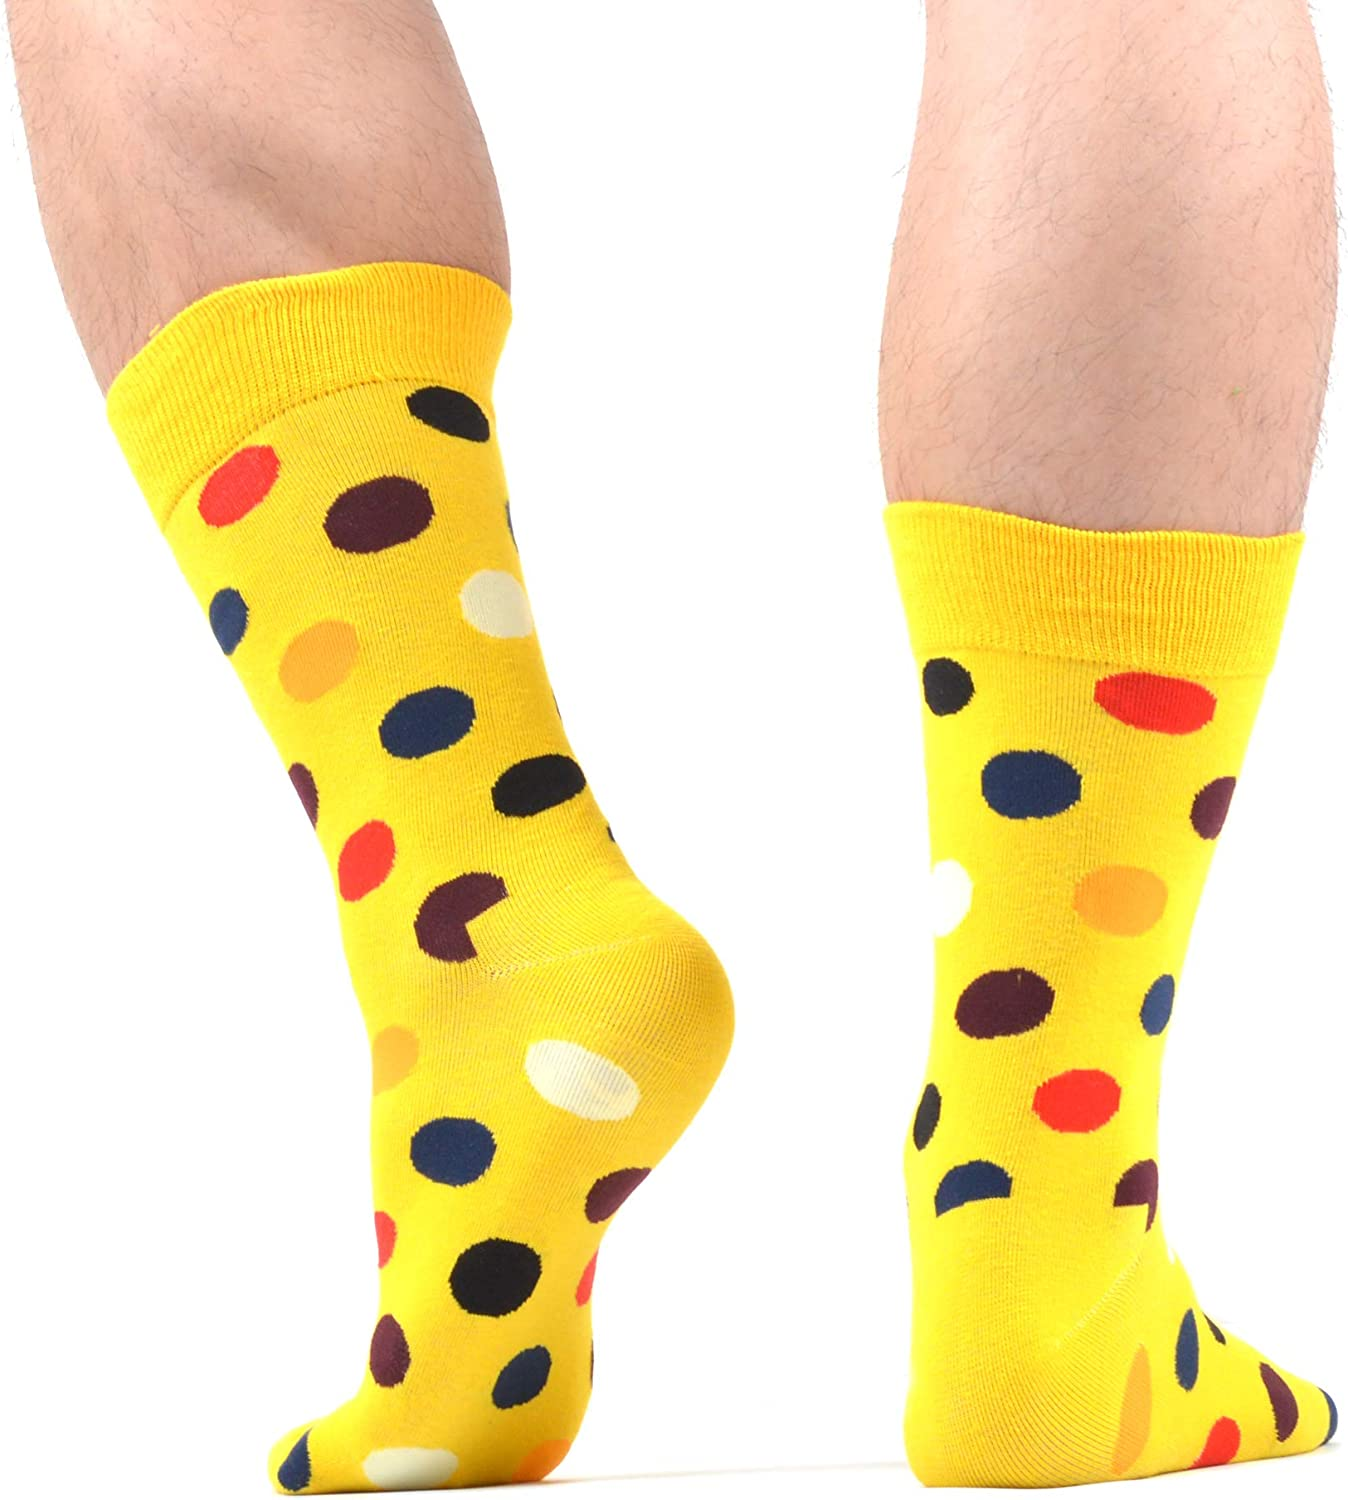 WeciBor Mens Funny Crazy Novelty Colorful Patterned Combed Cotton Dress Crew Socks